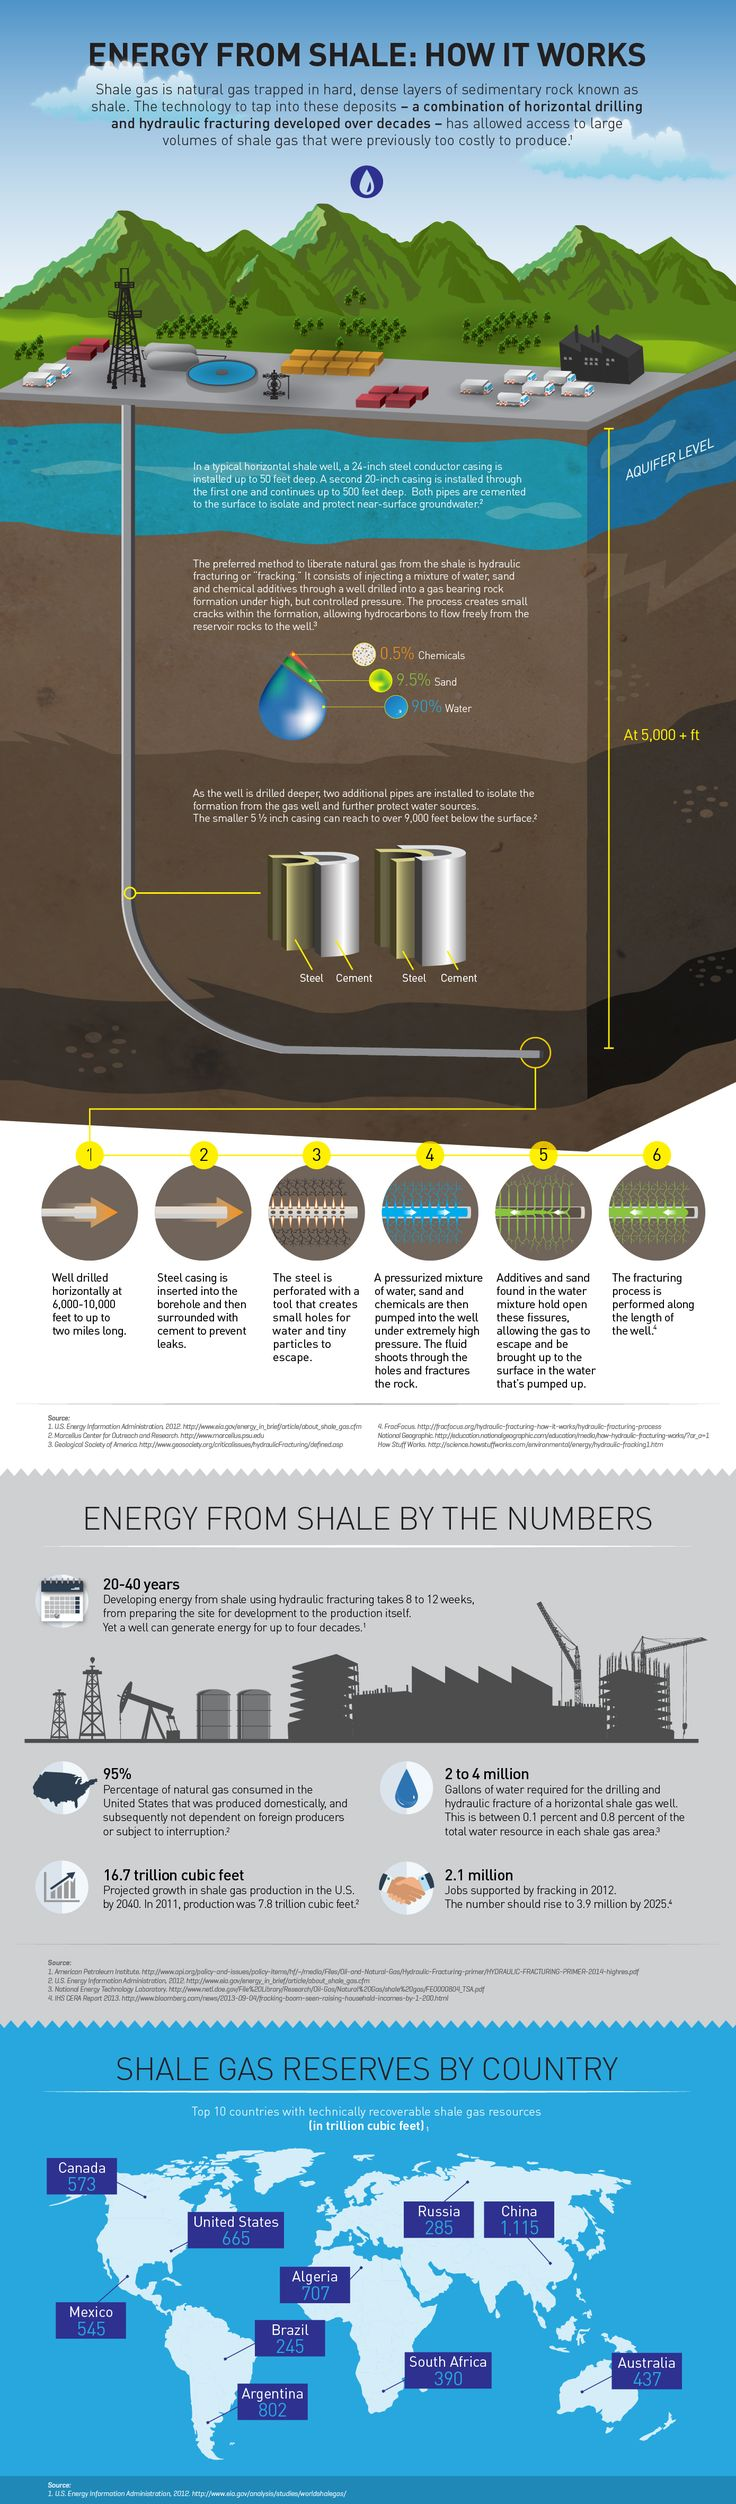 Energy From Shale: How It Works. Shale gas is natural gas trapped in hard, dense layers of sedimentary rock. The technology to tap into these deposits - known as fracking - is a combination of horizontal drilling and hydraulic fracturing developed over decades.